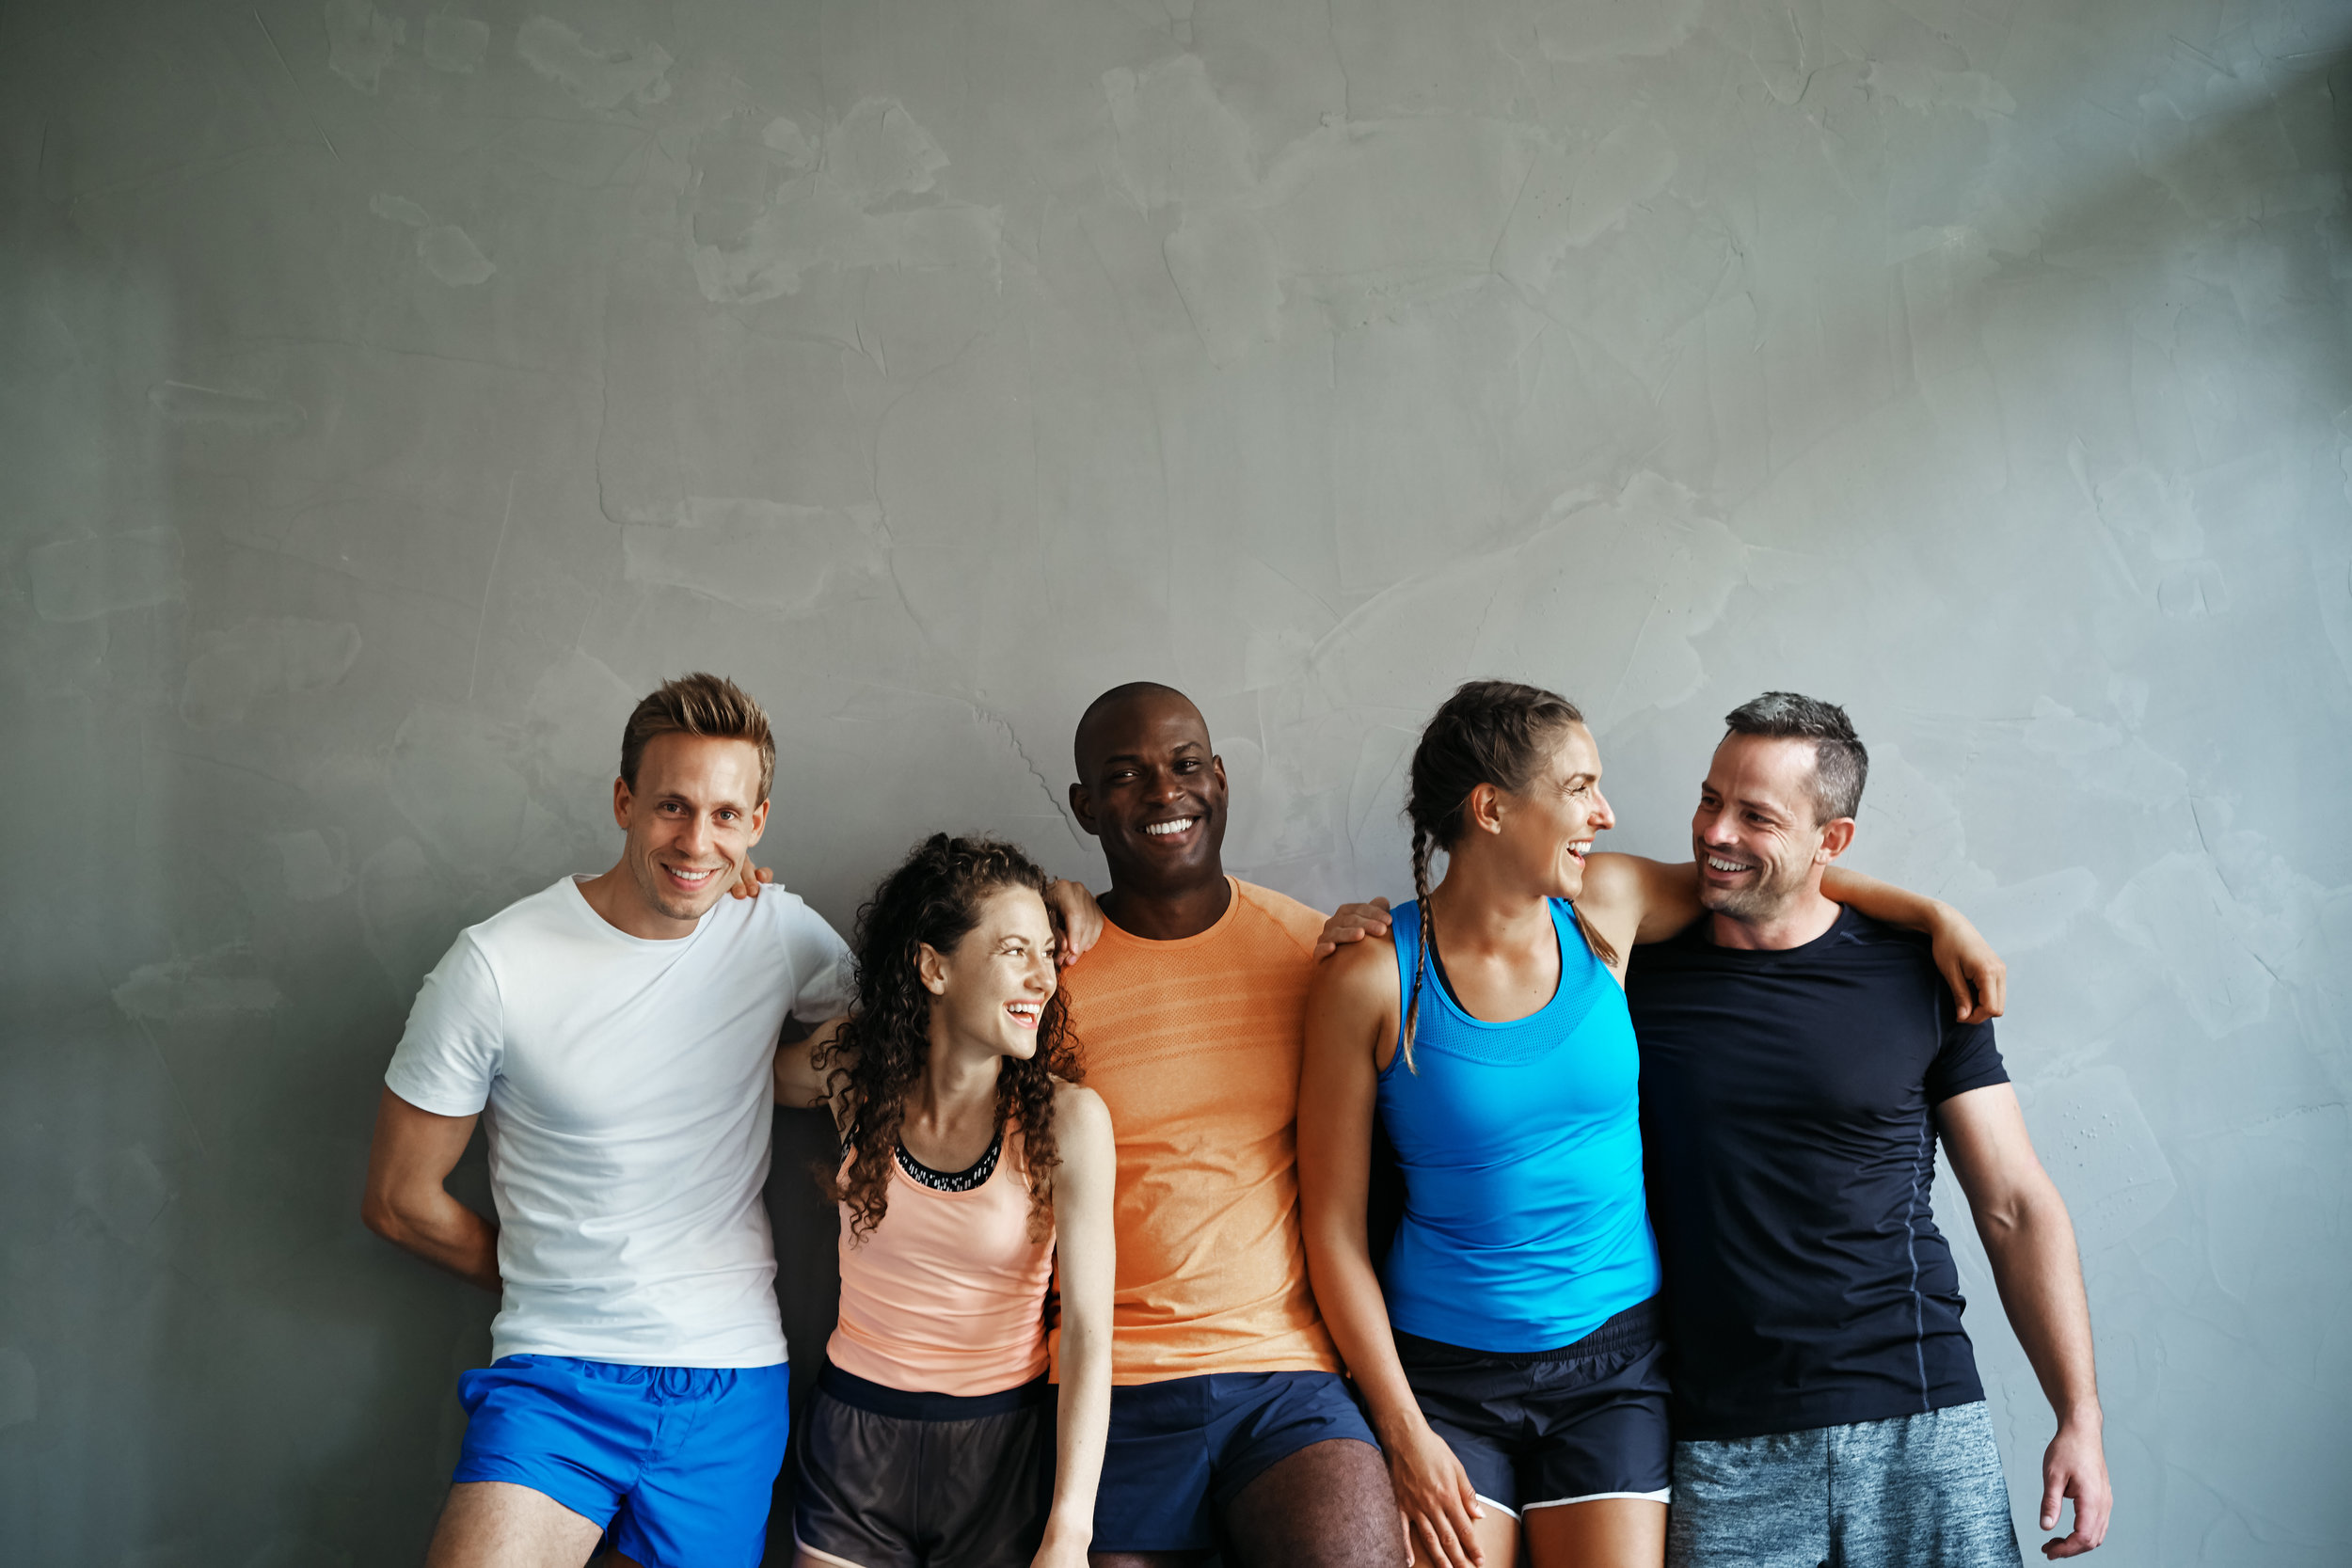 Diverse group of laughing friends standing together at the gym